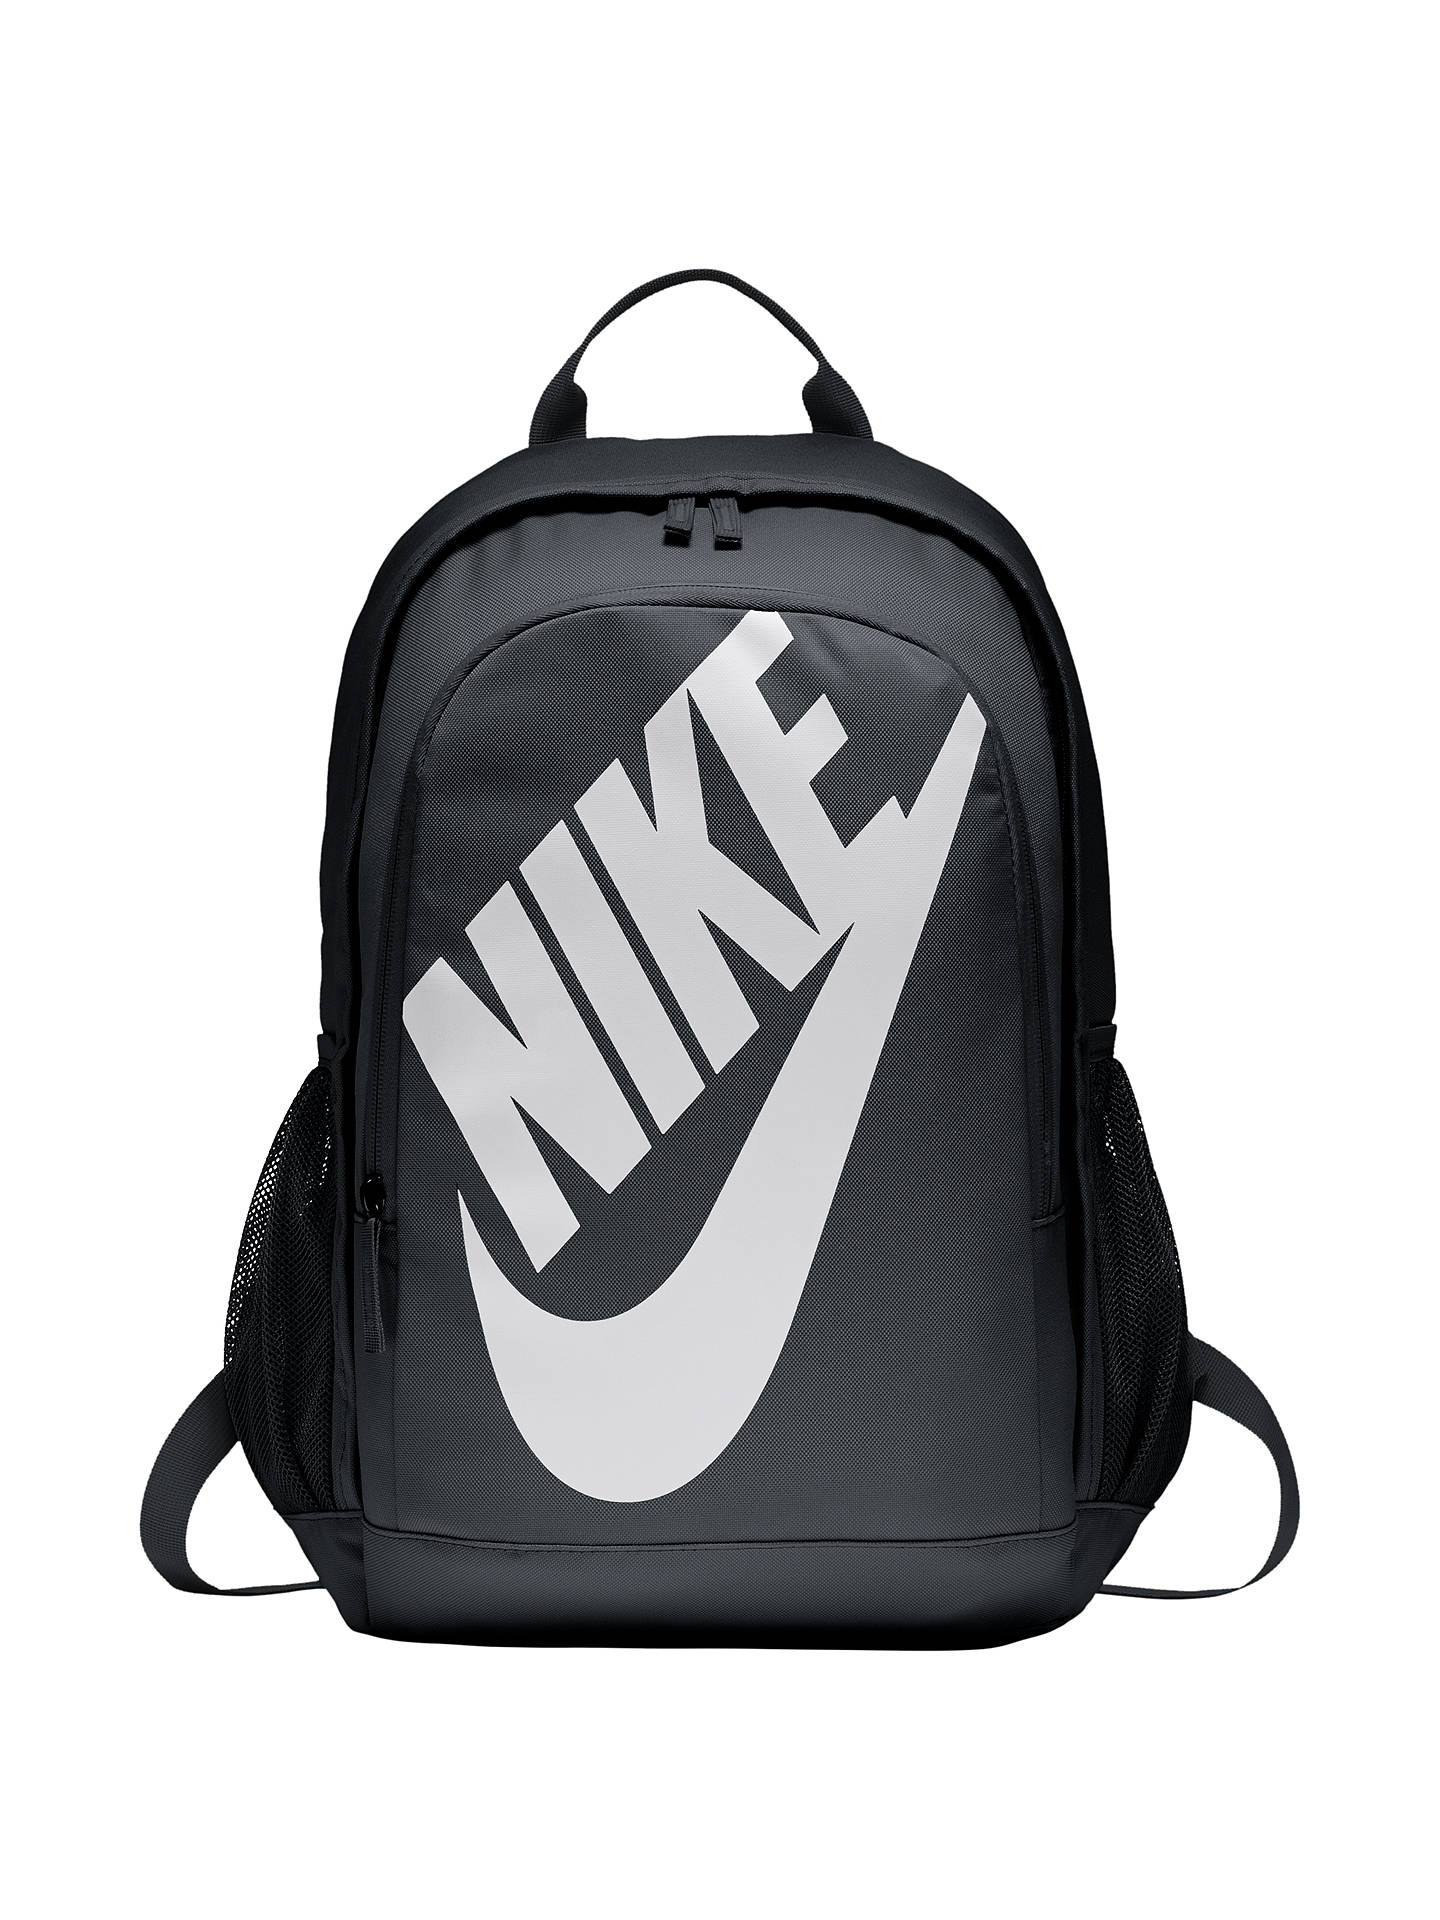 26e4737b870b4 Buy Nike Sportswear Hayward Futura Backpack